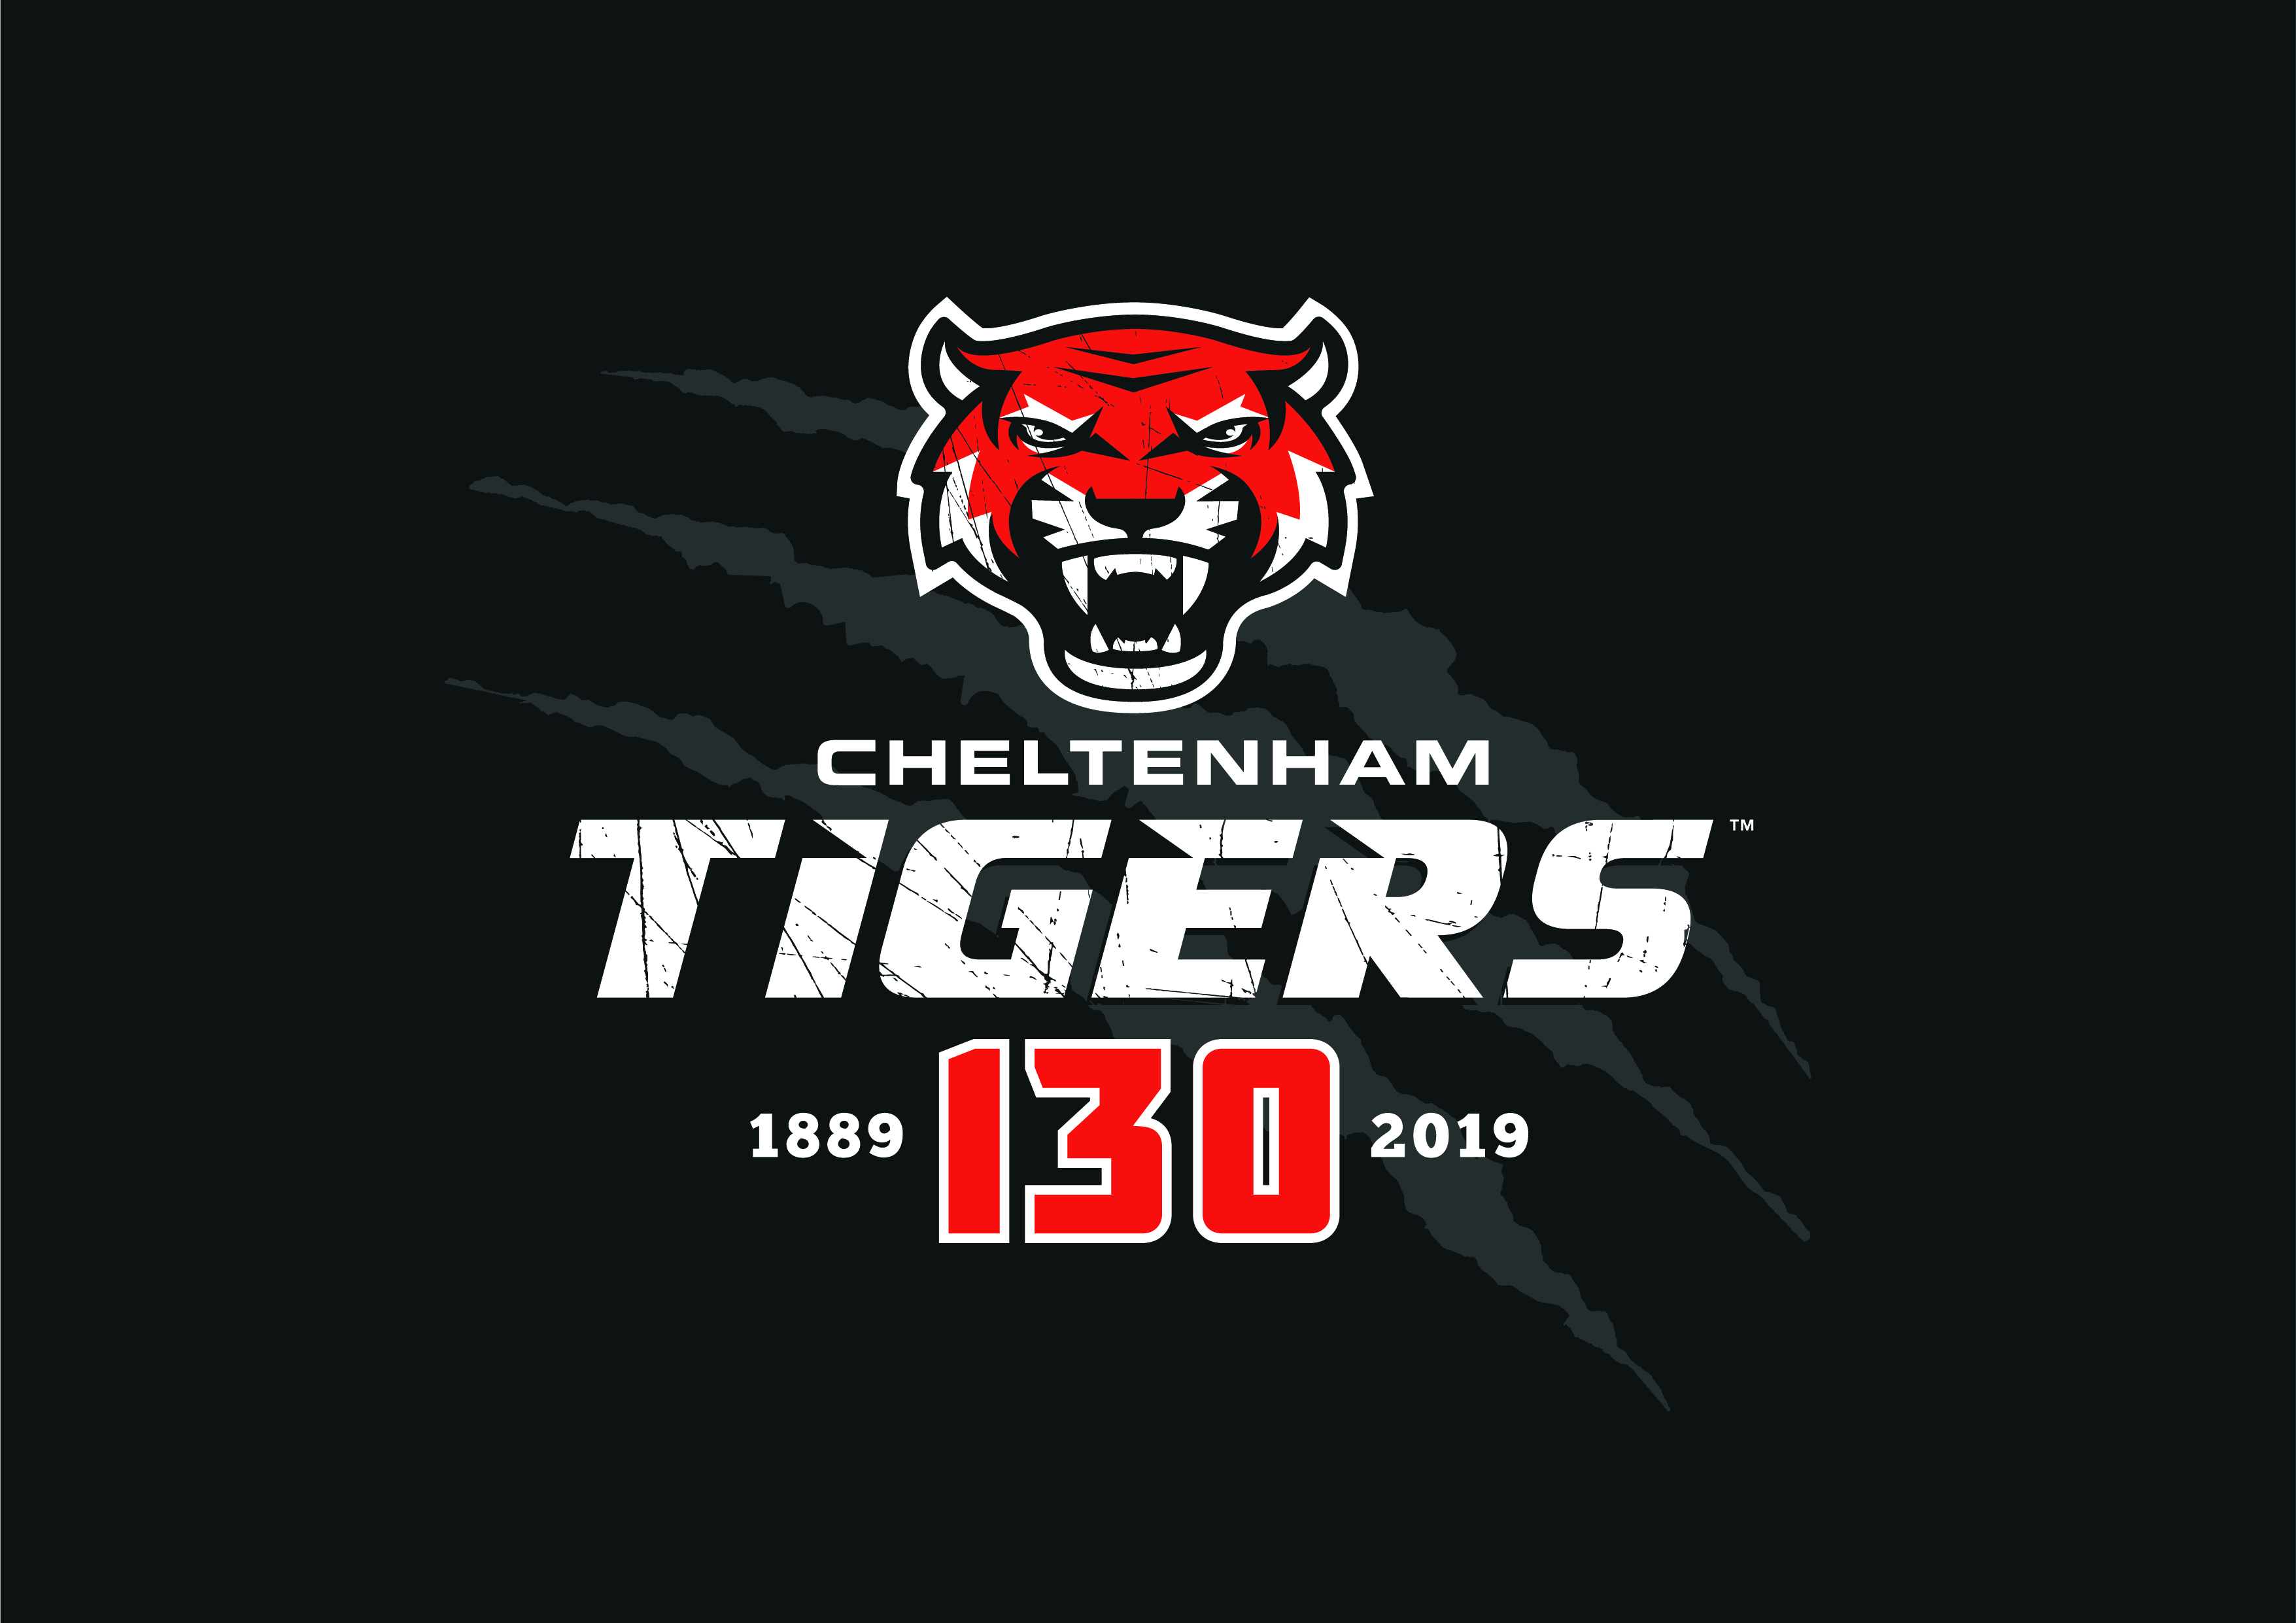 https://cheltenhamtigers.co.uk/wp-content/uploads/2019/07/Tigers-130-logo.jpg